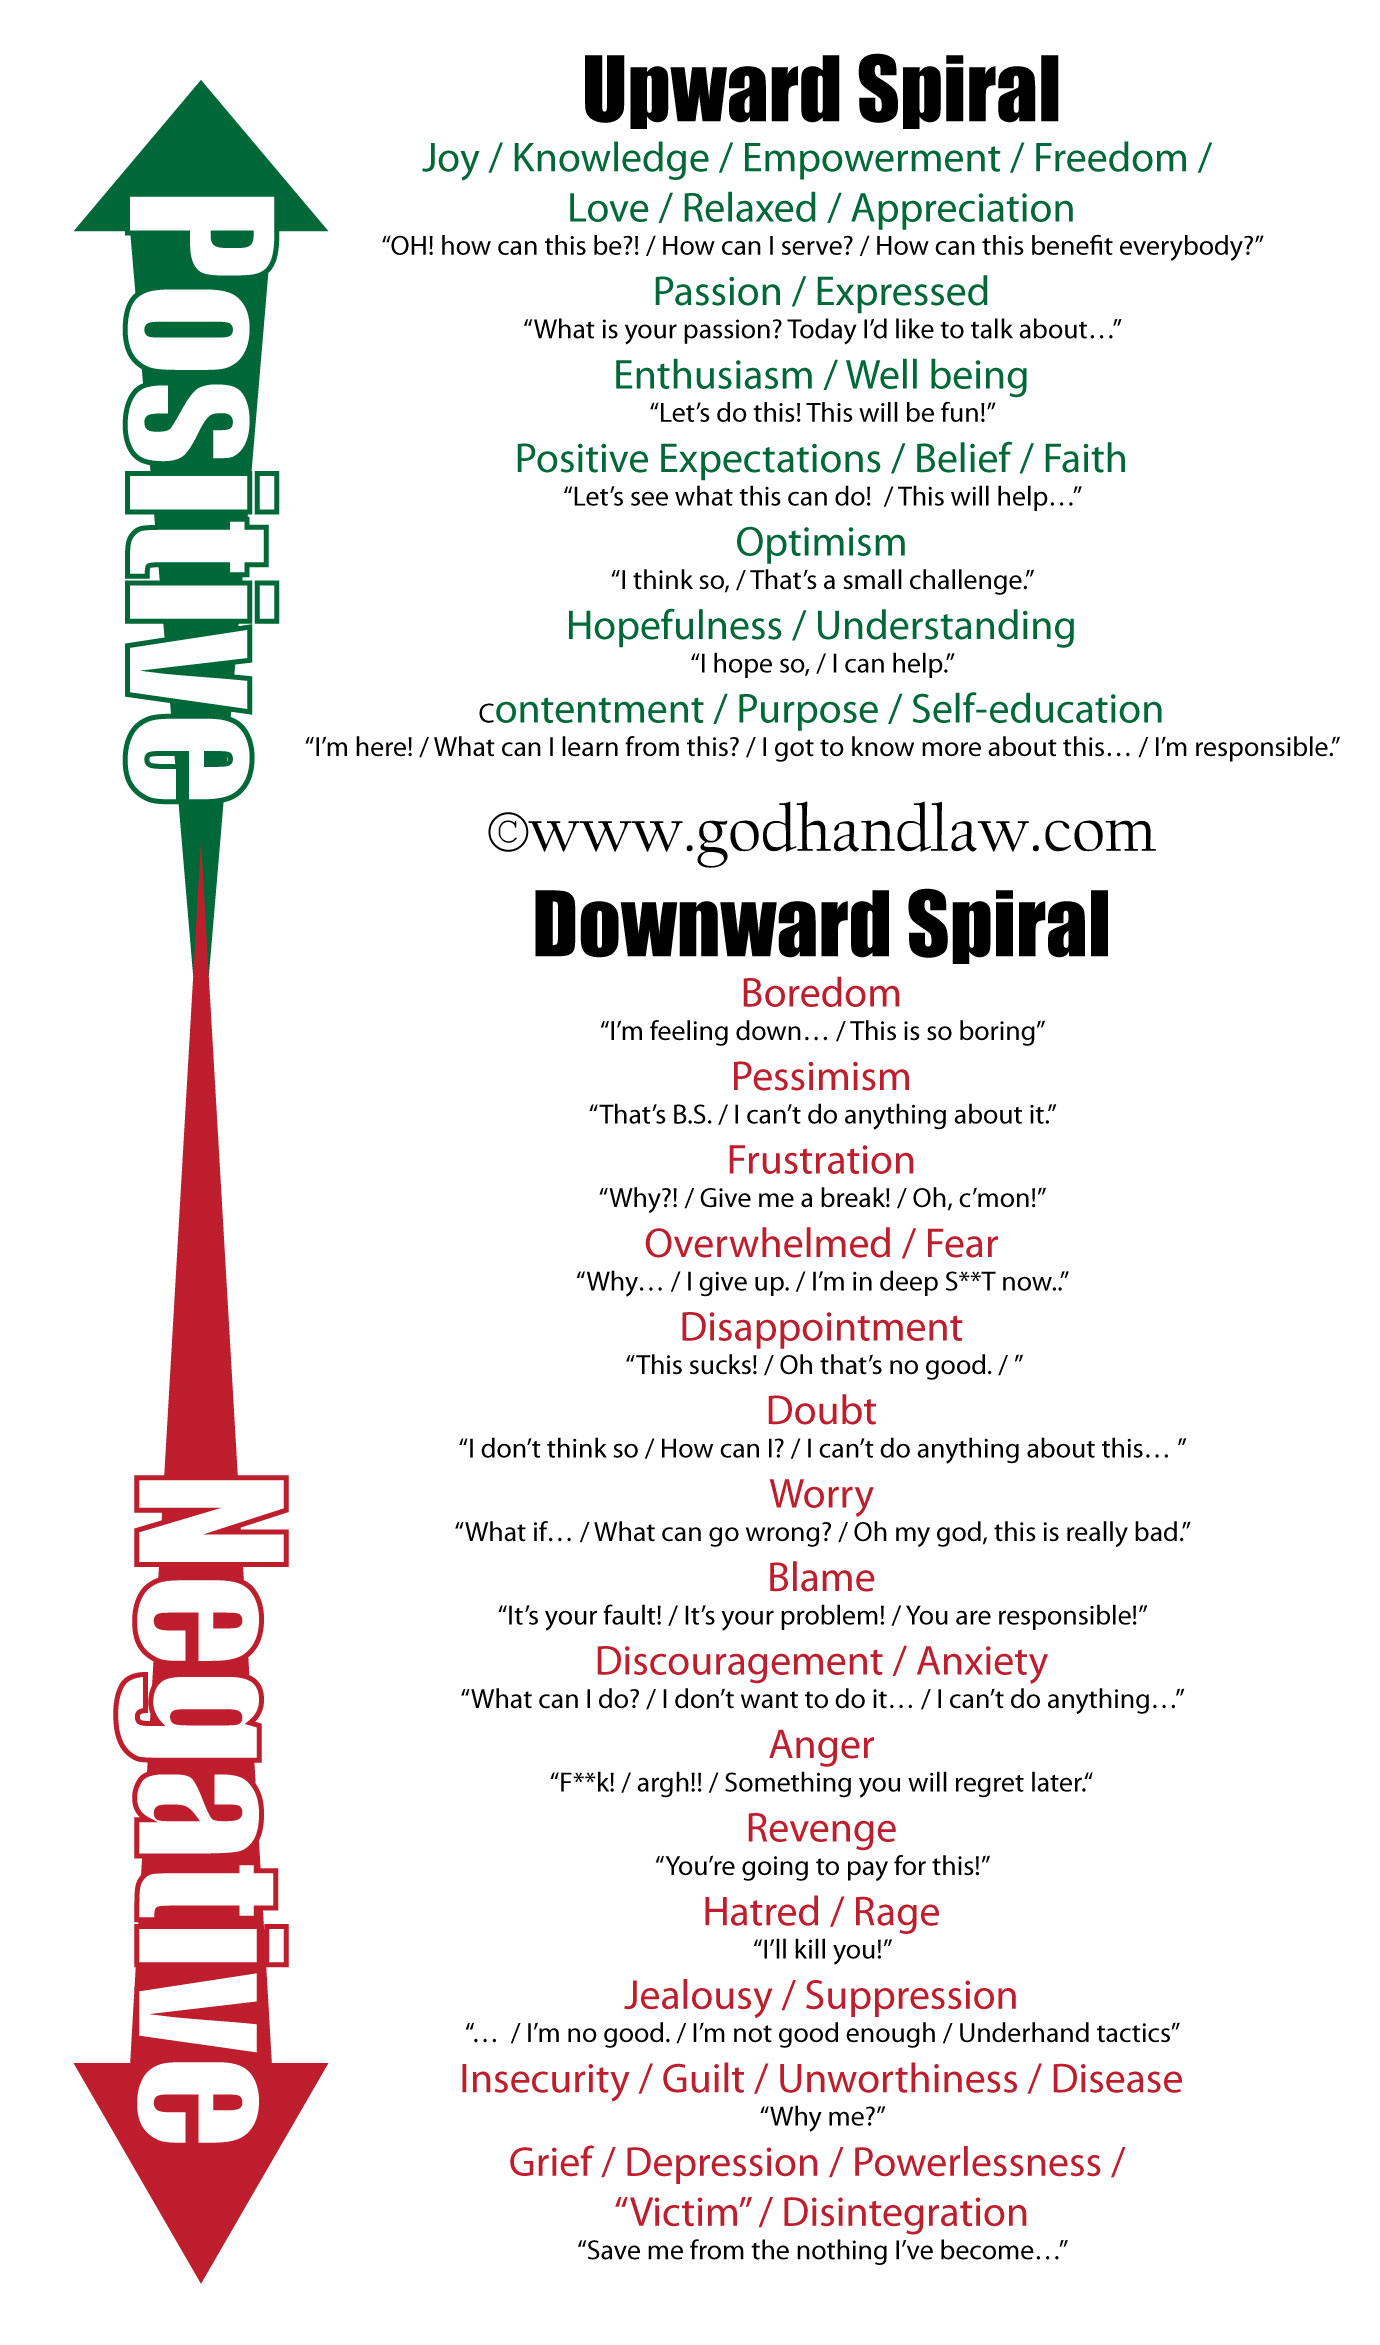 emotional spiral positive and negative emotions what to say and how to act in order to feel them